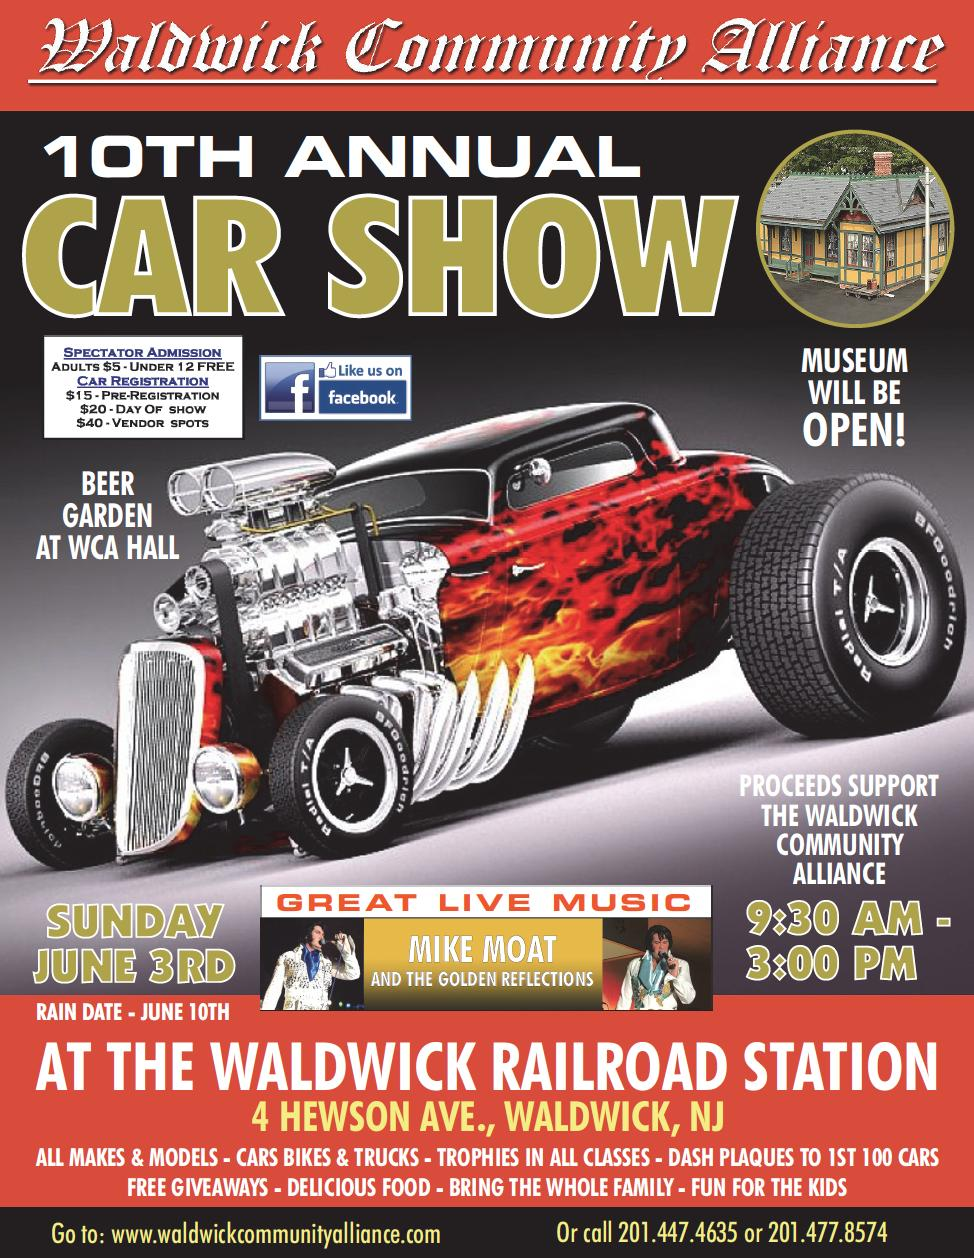 Waldwick Community Alliance Car Show Tickets In Waldwick NJ - Car shows in nj